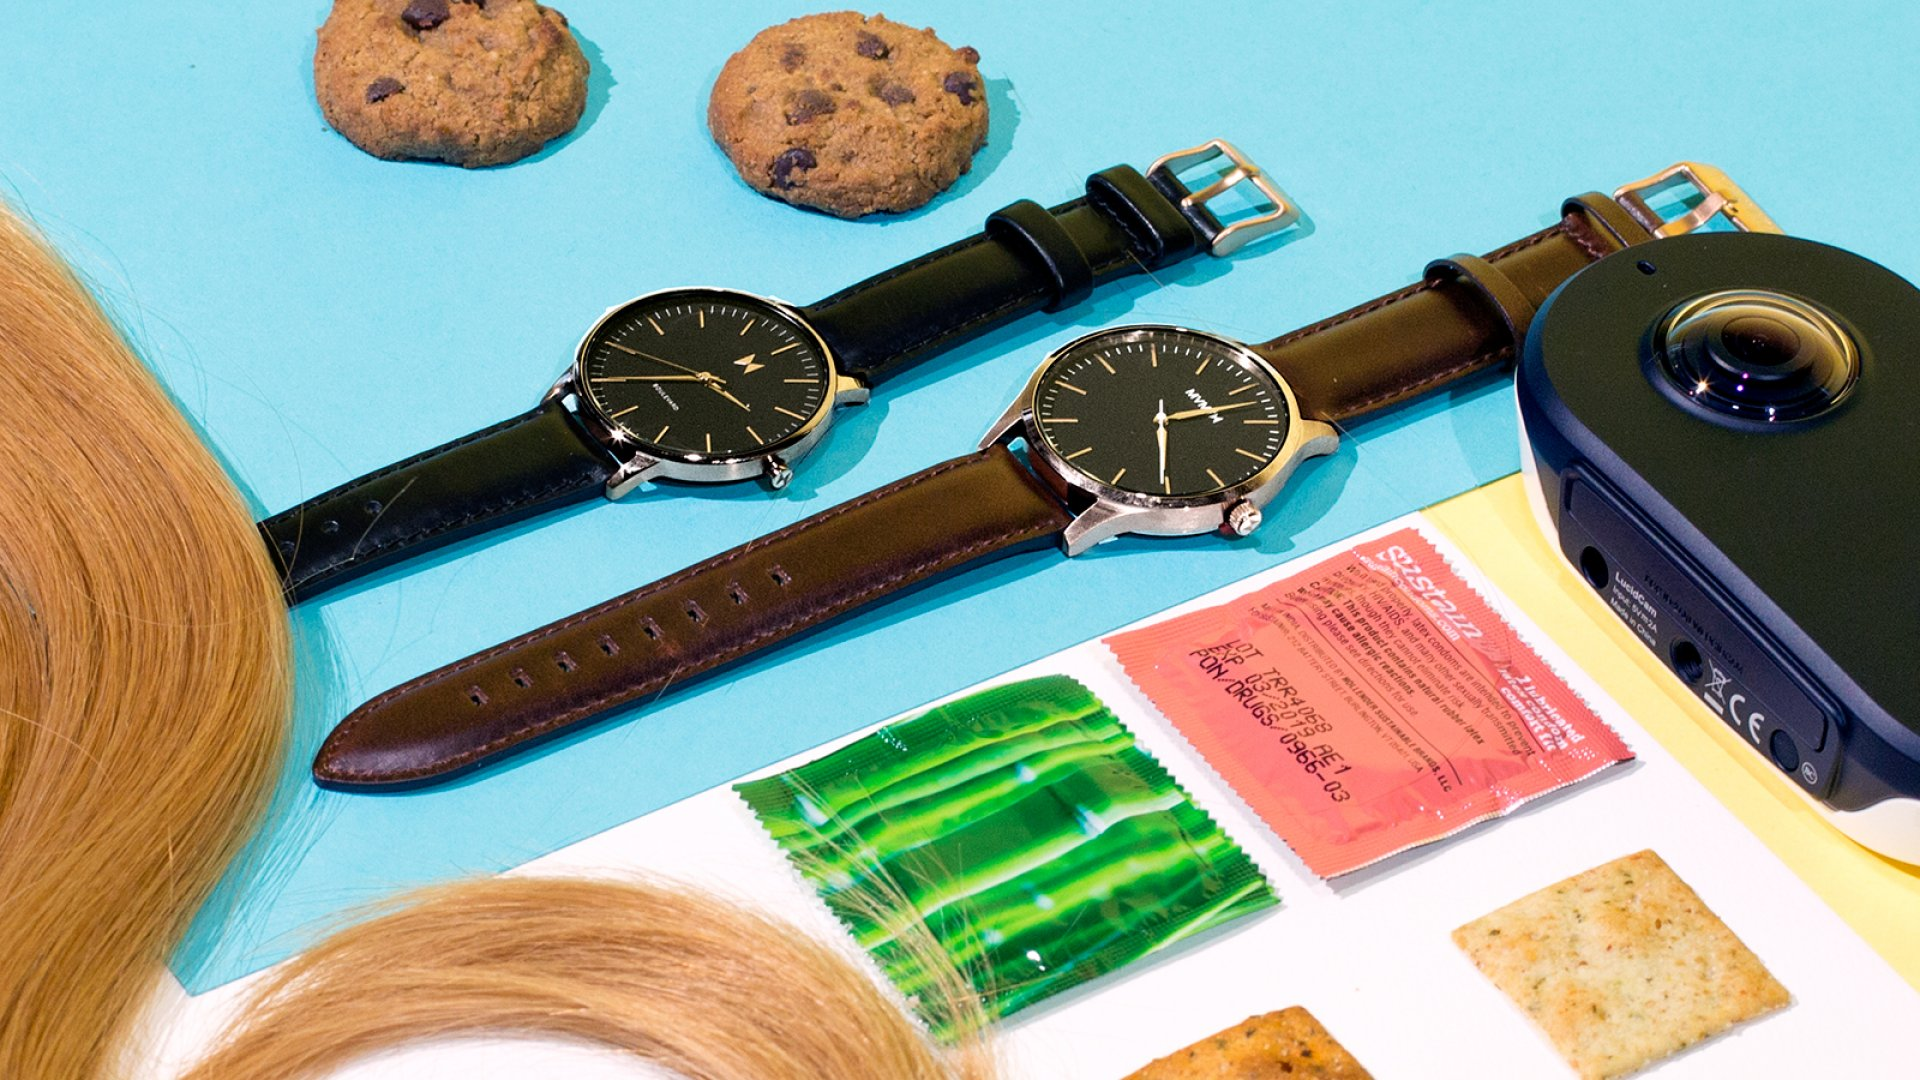 9 Very Cool Products Everyone Will Be Talking About This Summer